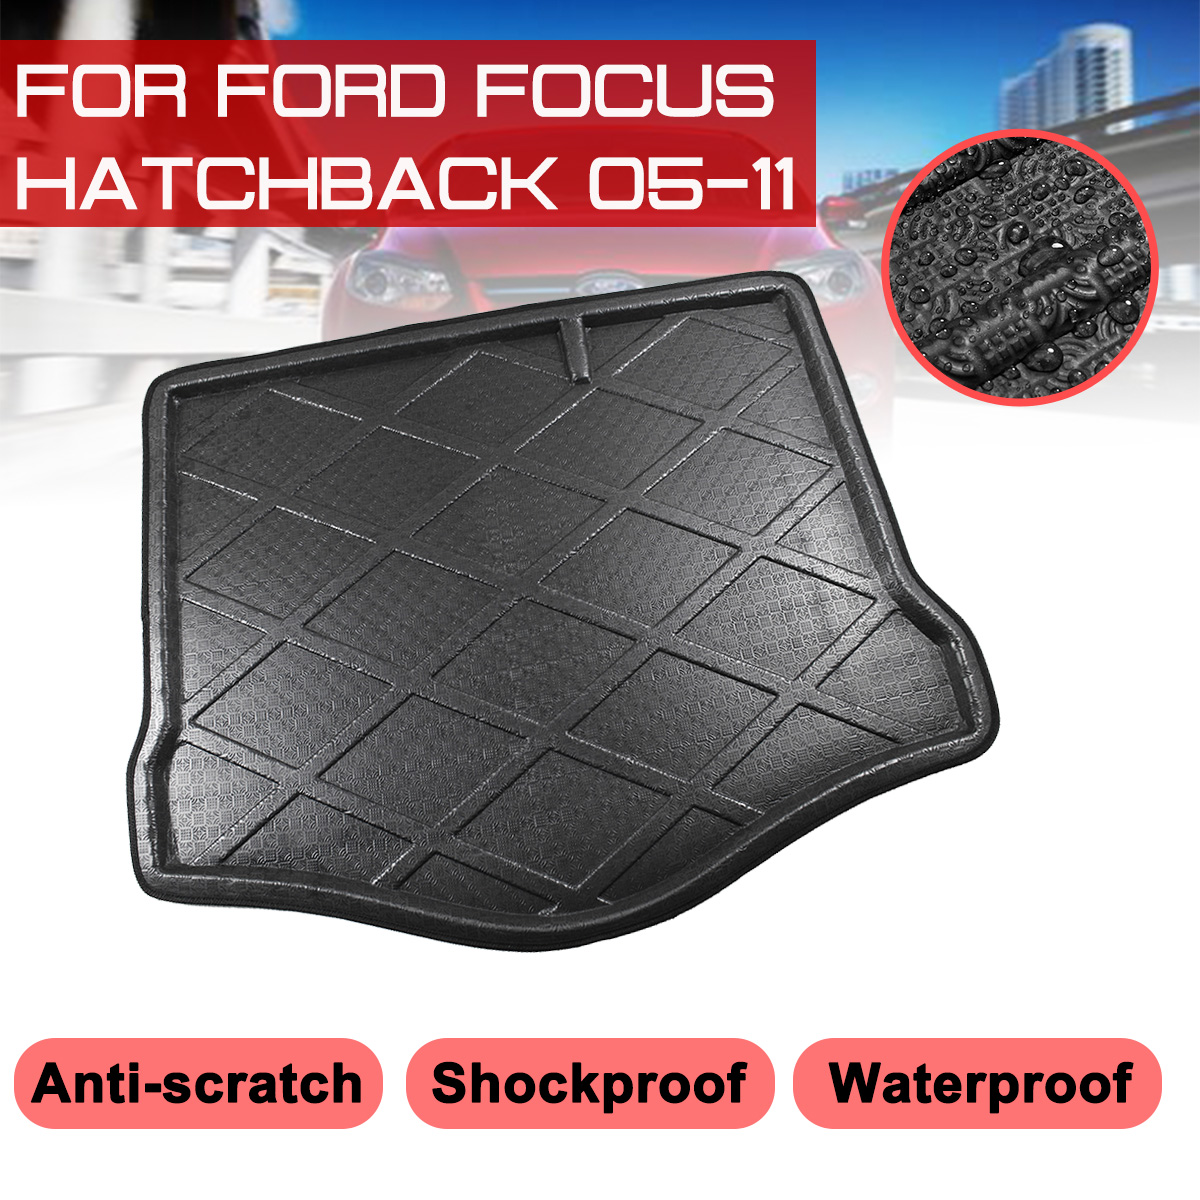 Car Rear Trunk Boot Mat For Ford Focus Hatchback 2005-2011 Waterproof Floor Mats Carpet Anti Mud Tray Cargo Liner